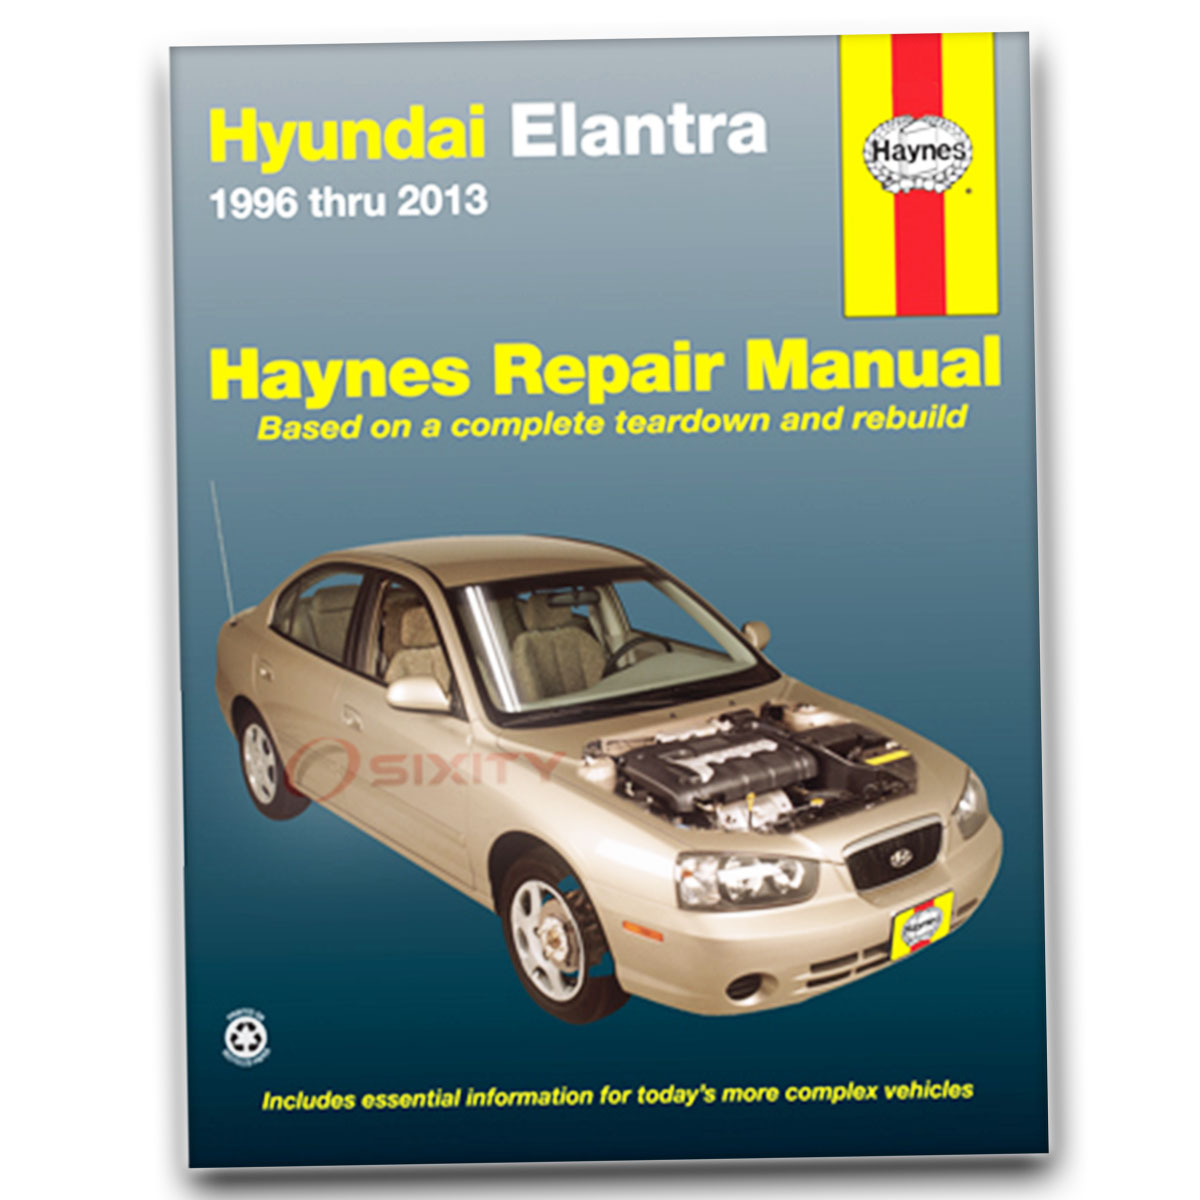 Haynes Repair Manual for Hyundai Elantra GLS GT Limited Blue Touring SE  Base mj